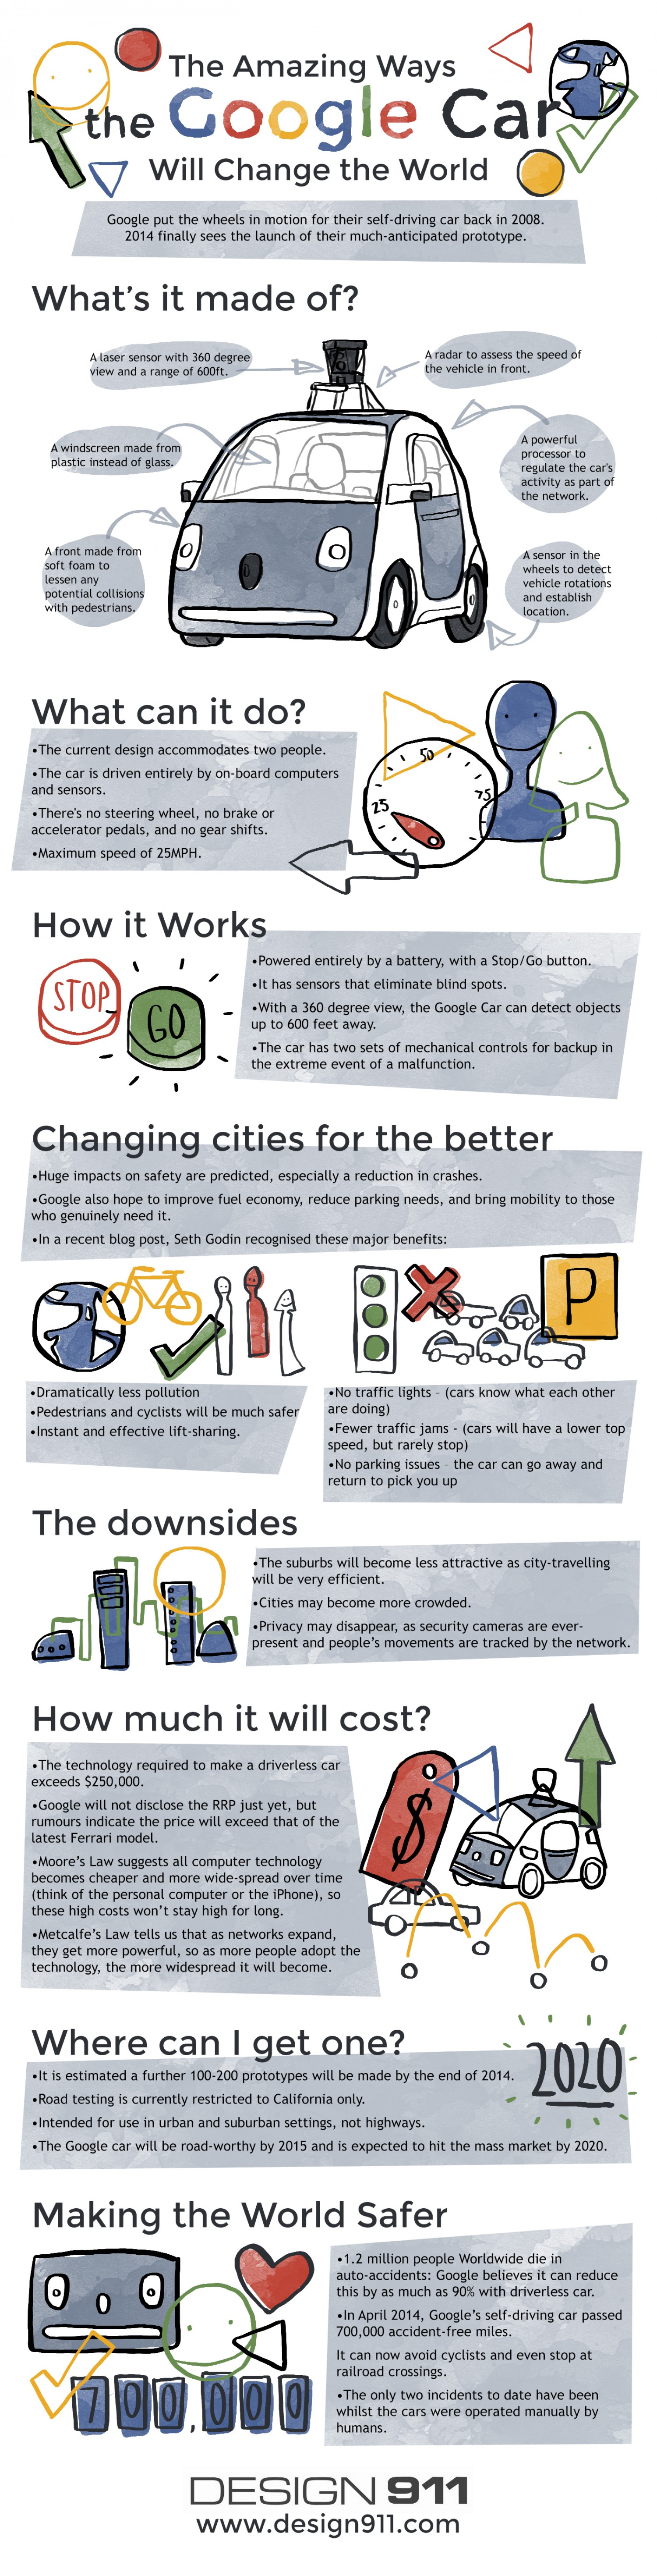 Amazing Ways The Google Car Will Change the World-infographic